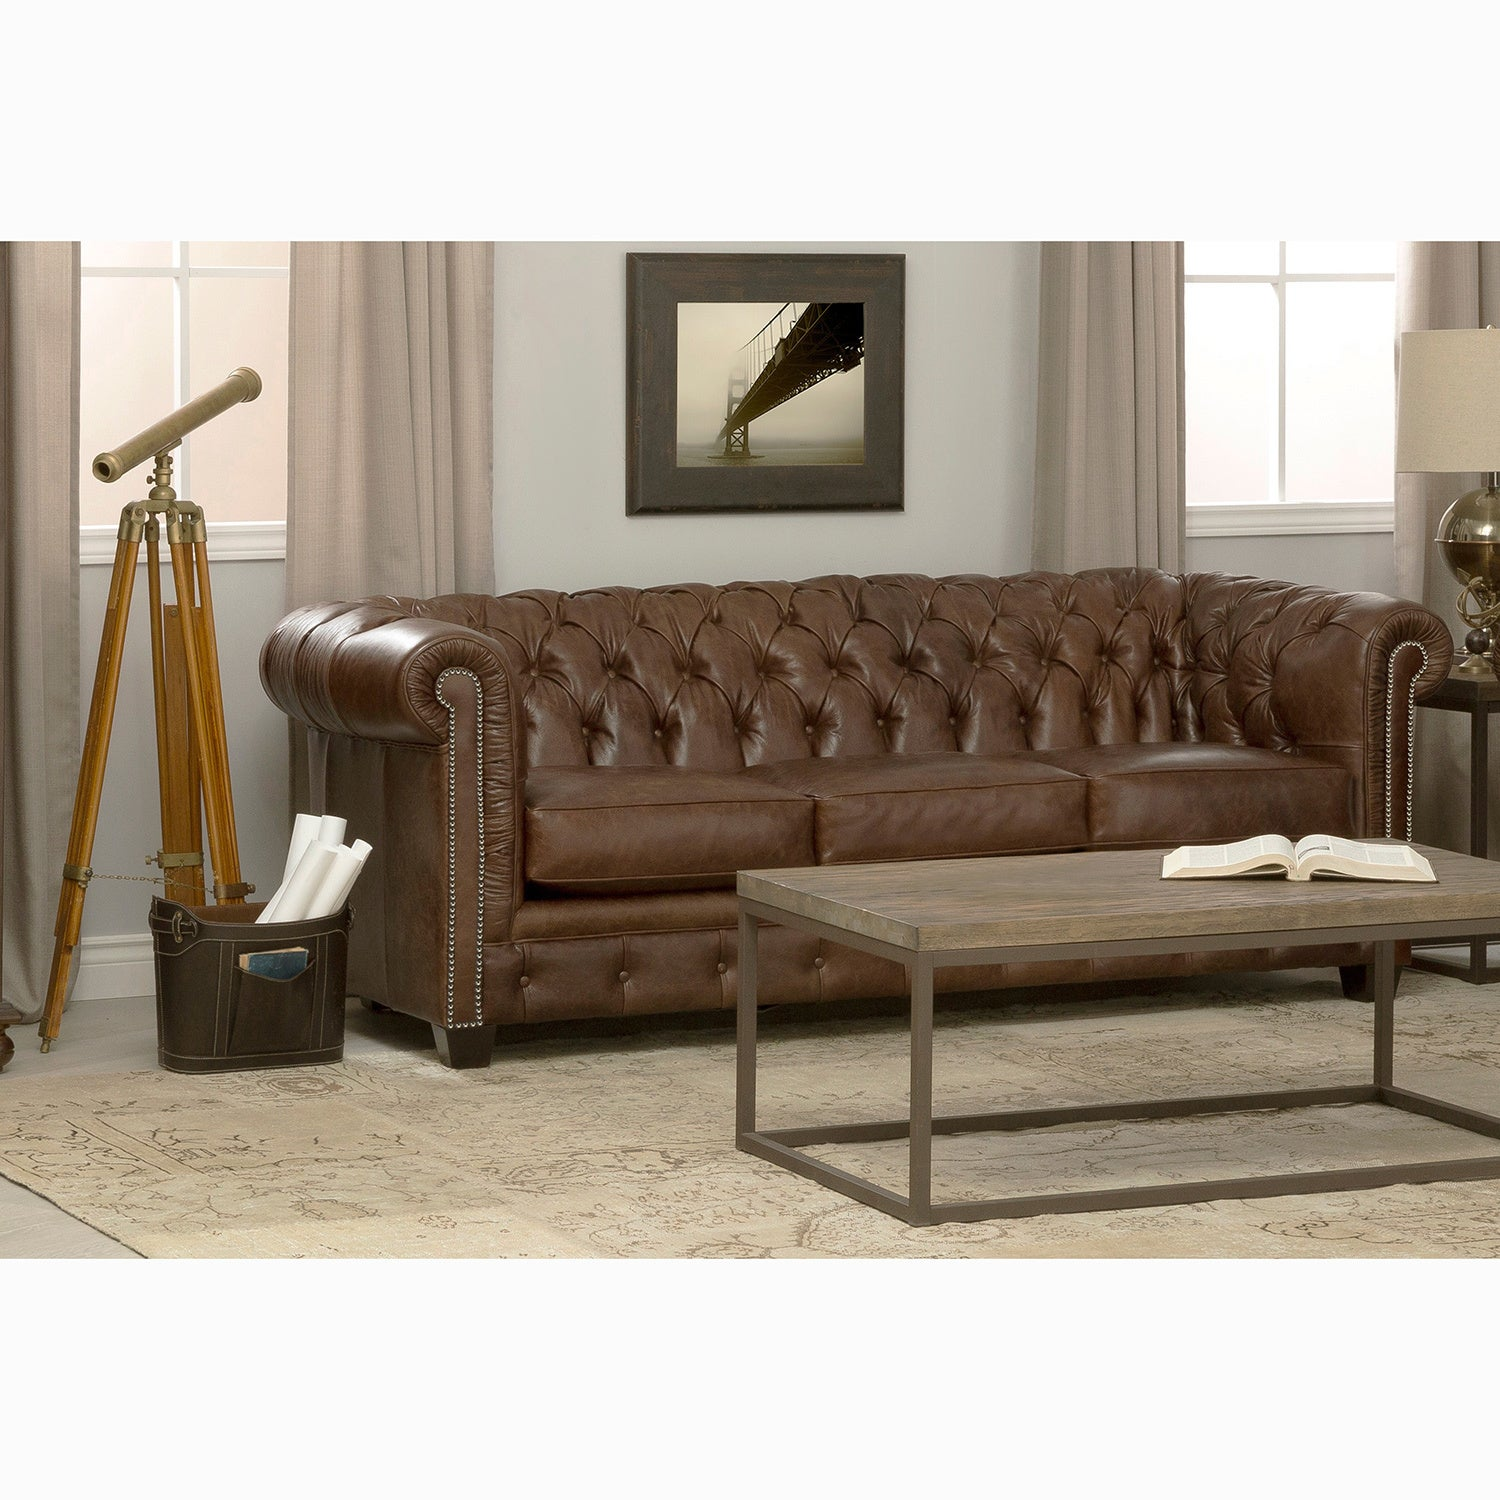 Hancock Tufted Brown Leather Chesterfield Sofa   Free Shipping Today    Overstock.com   14678640